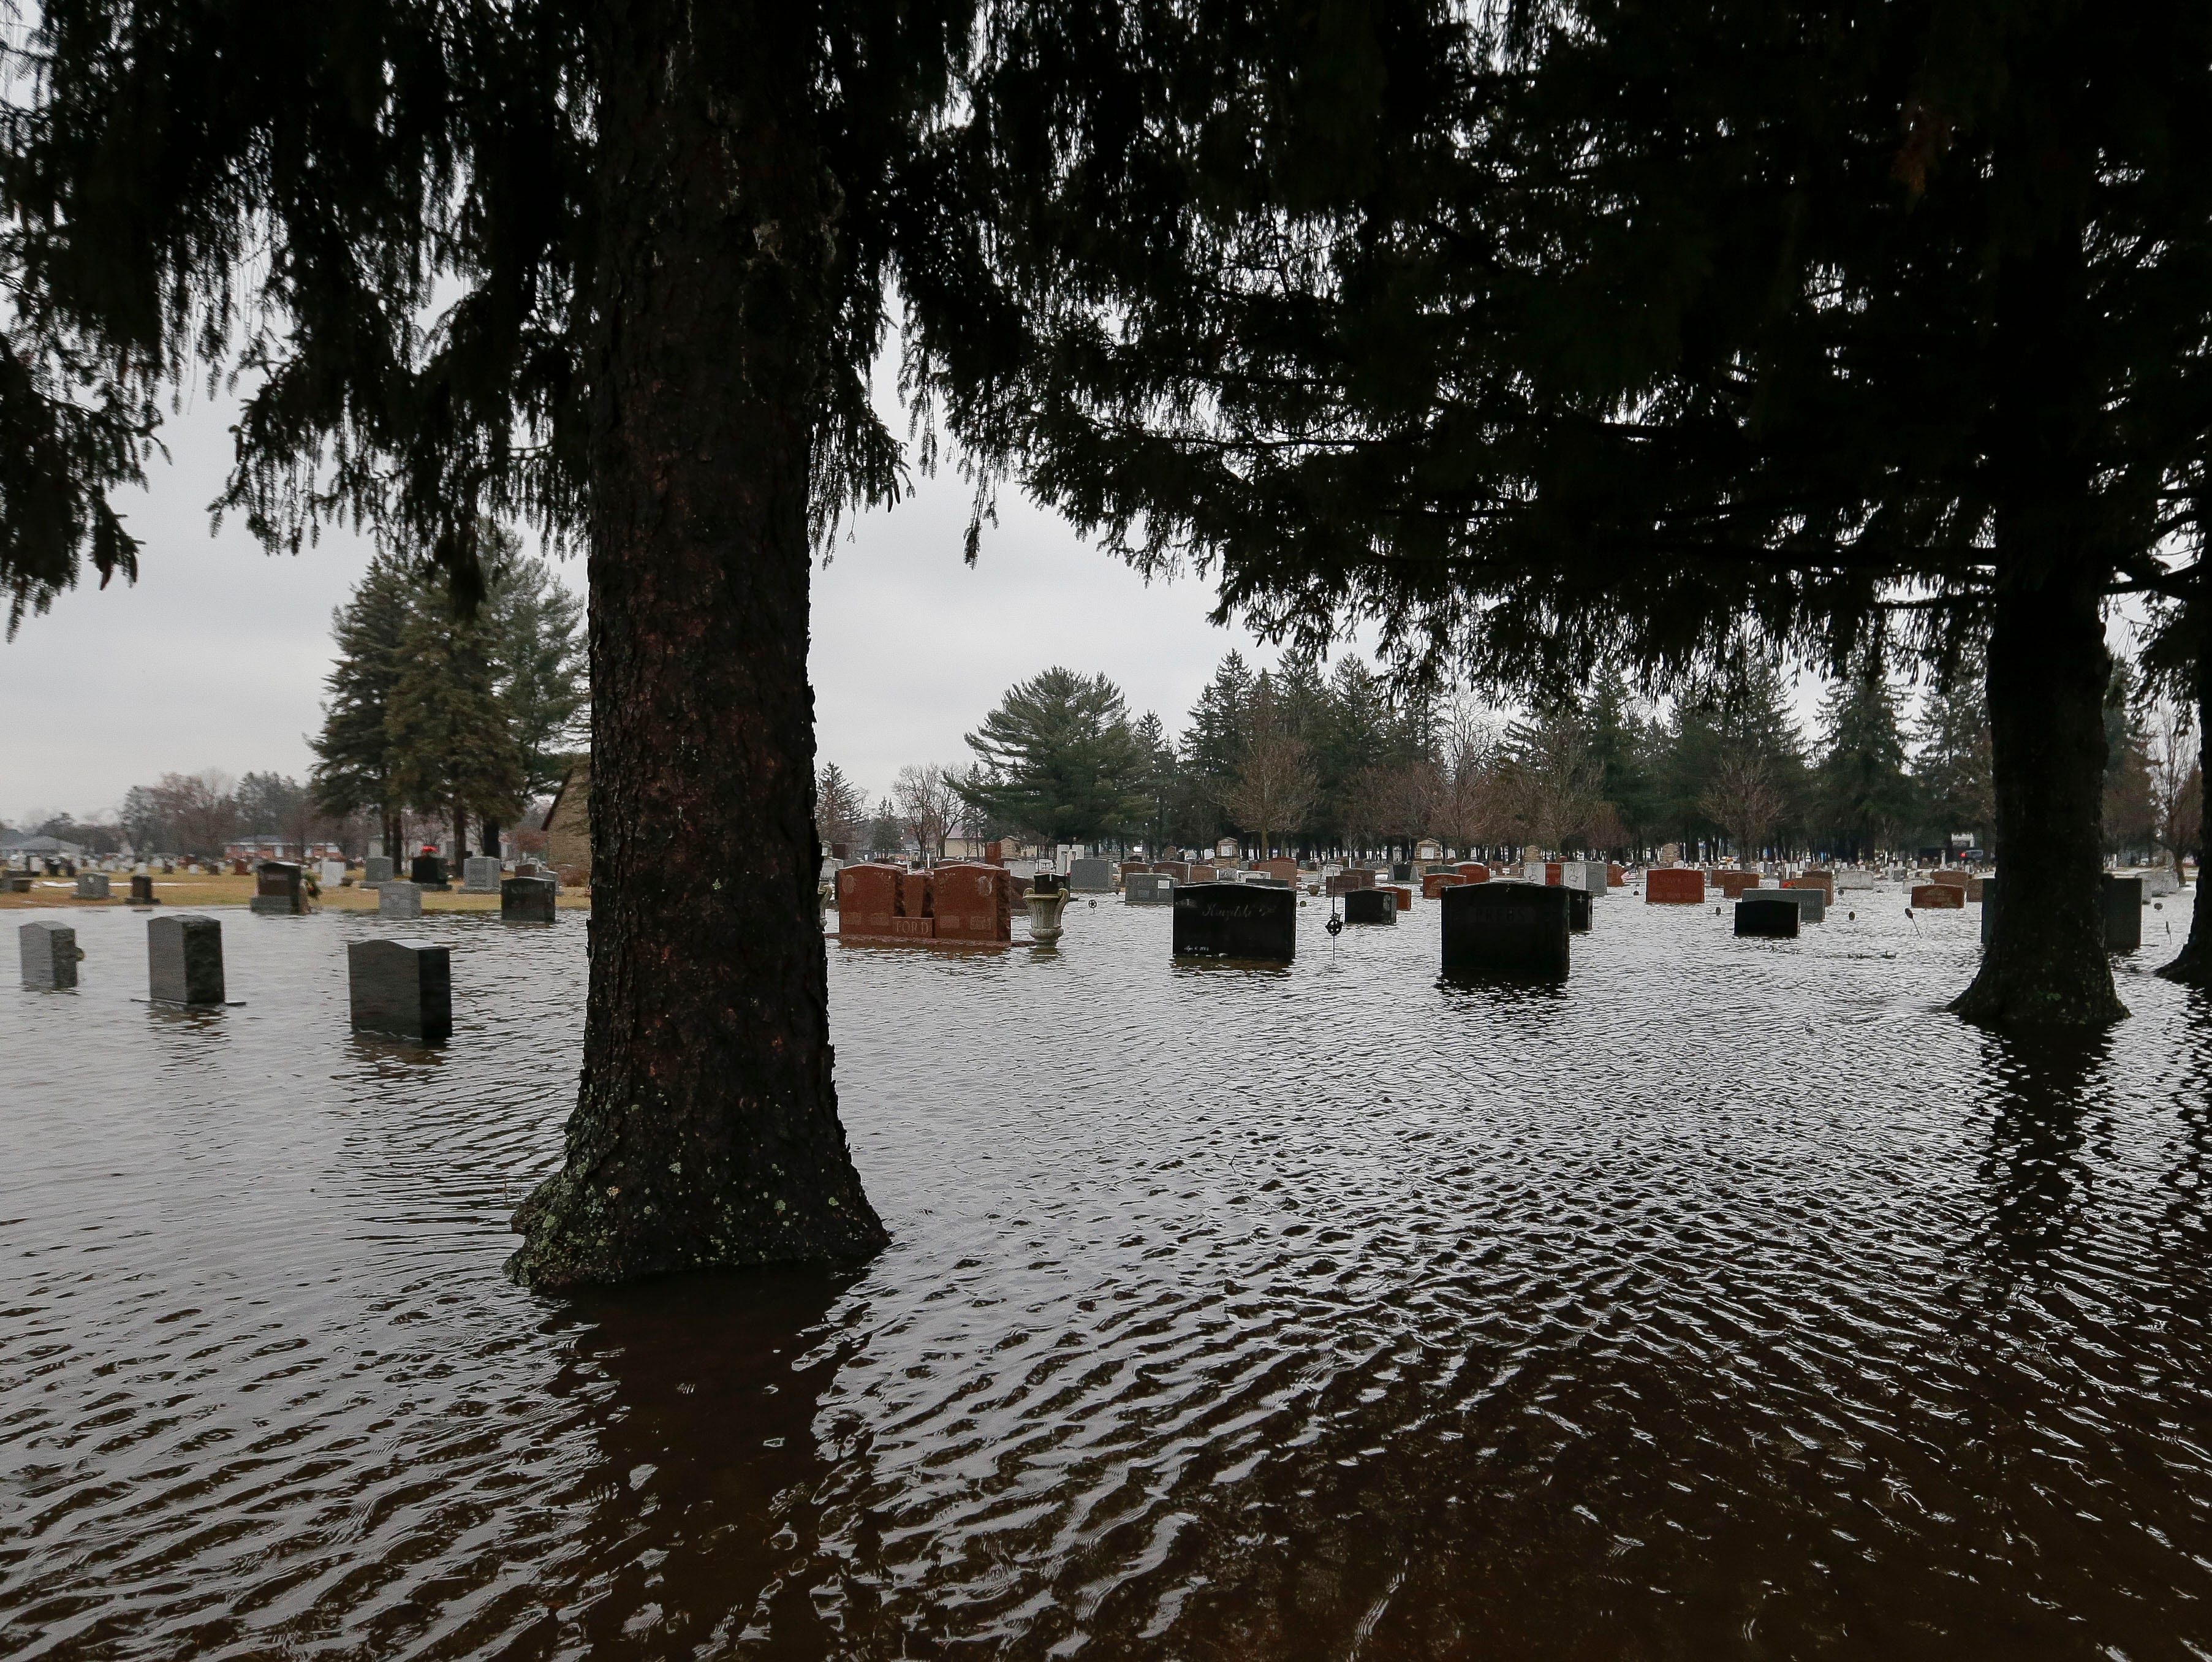 Flood waters overtake part of Guarian Angel Cemetery on Monday, January 7, 2019, in Stevens Point, Wis. Tork Mason/USA TODAY NETWORK-Wisconsin